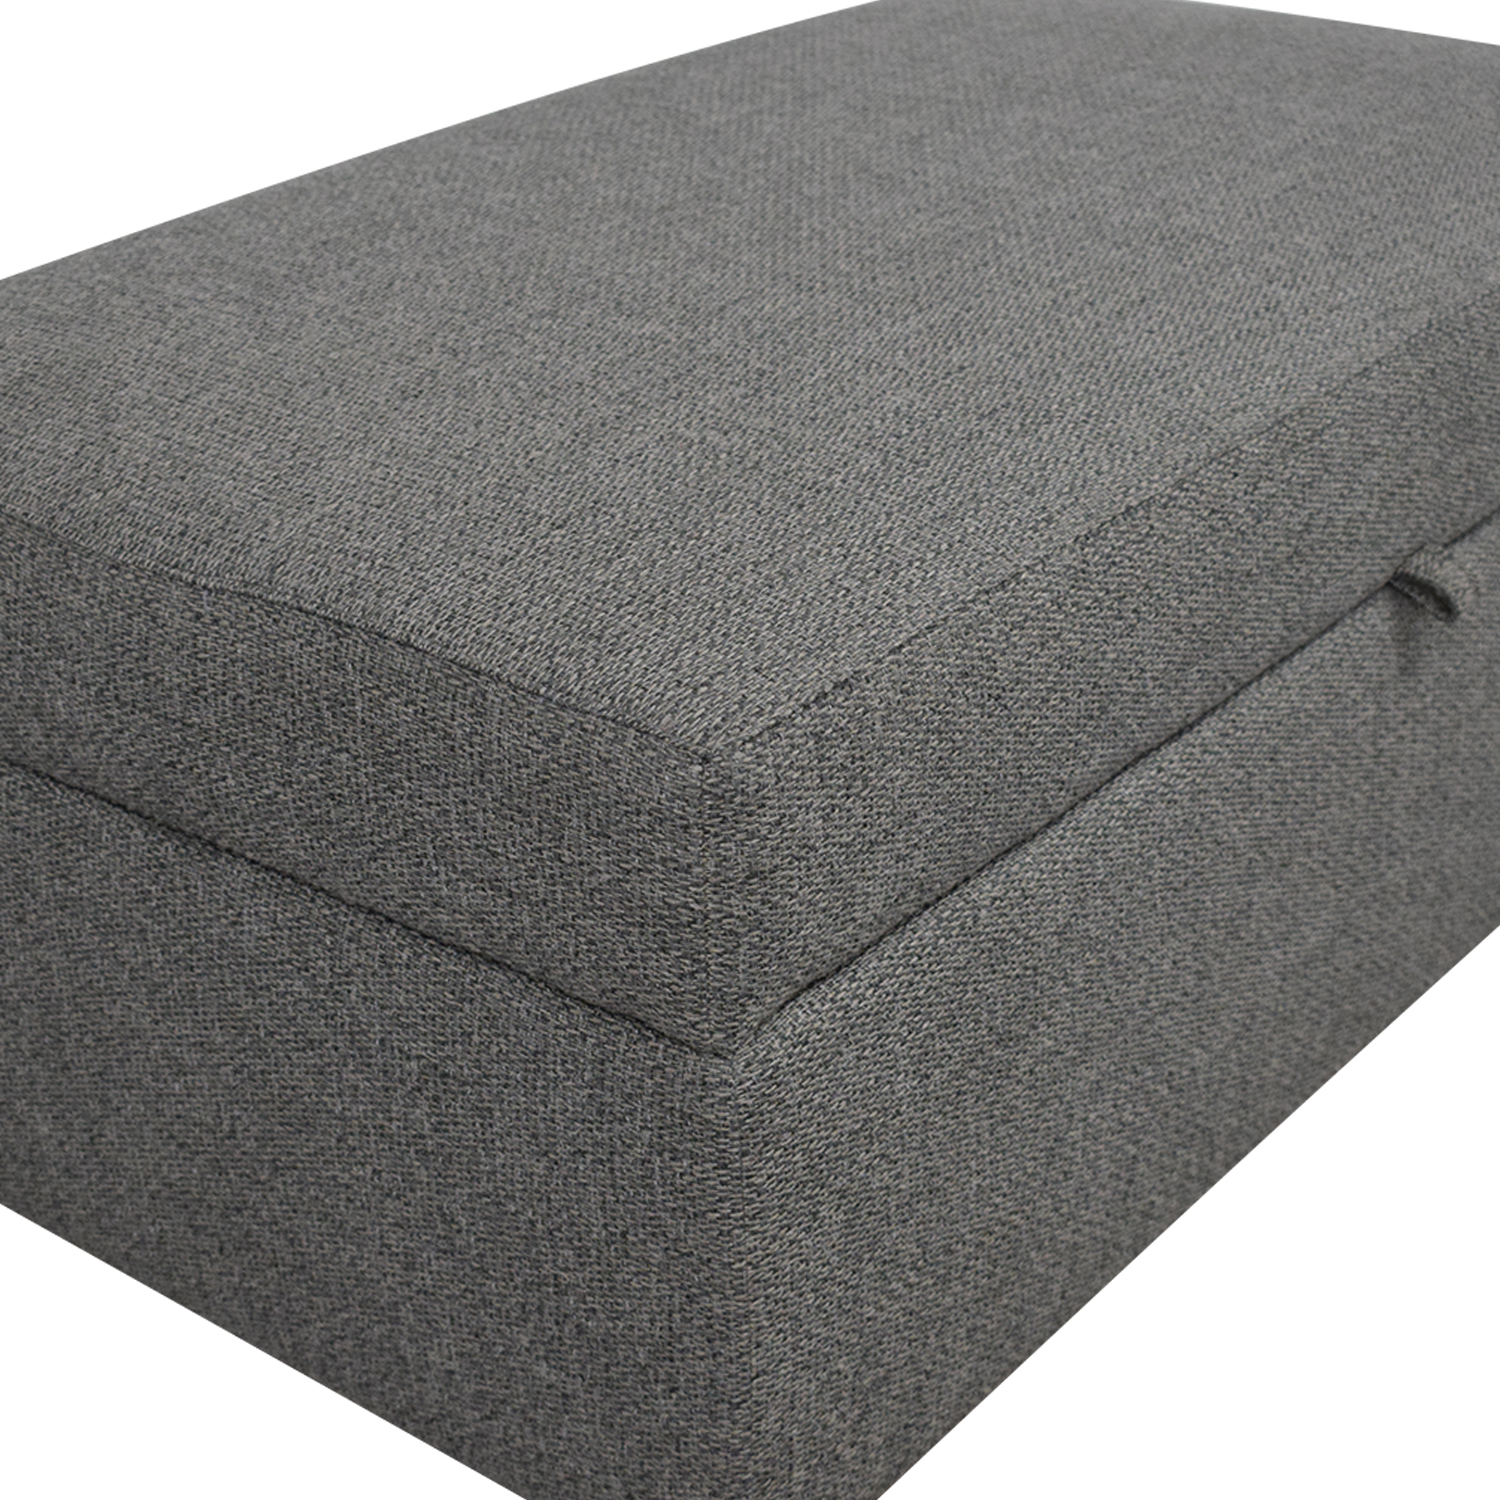 Crate & Barrel Barrett Storage Ottoman with Tray and Casters discount